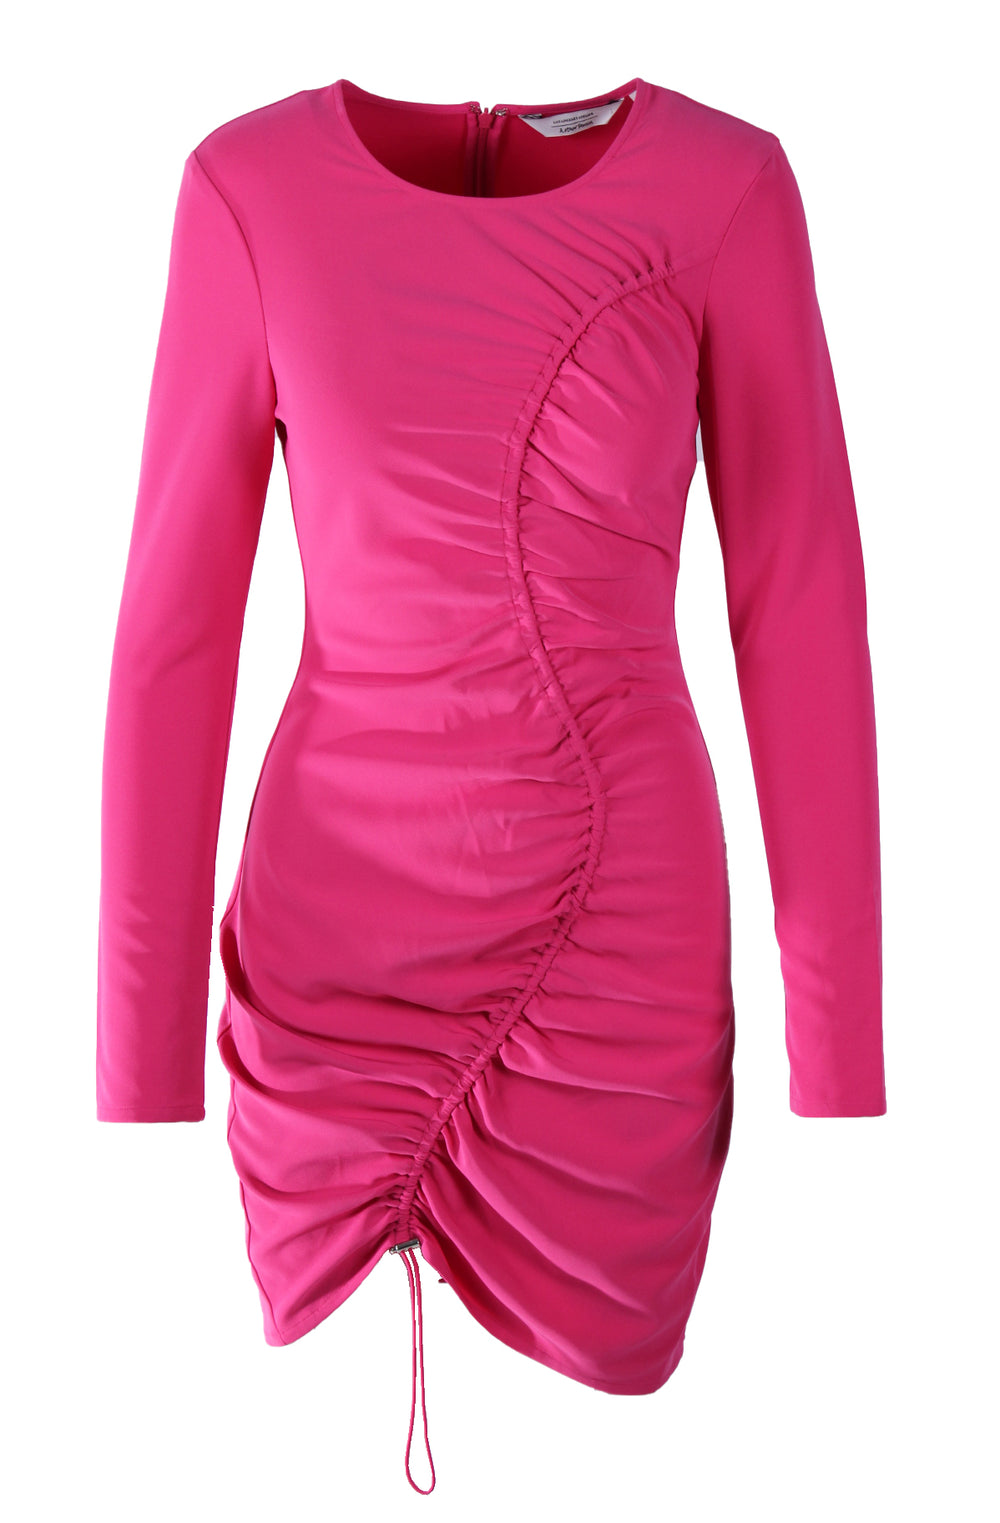 & other stories magenta long sleeve dress